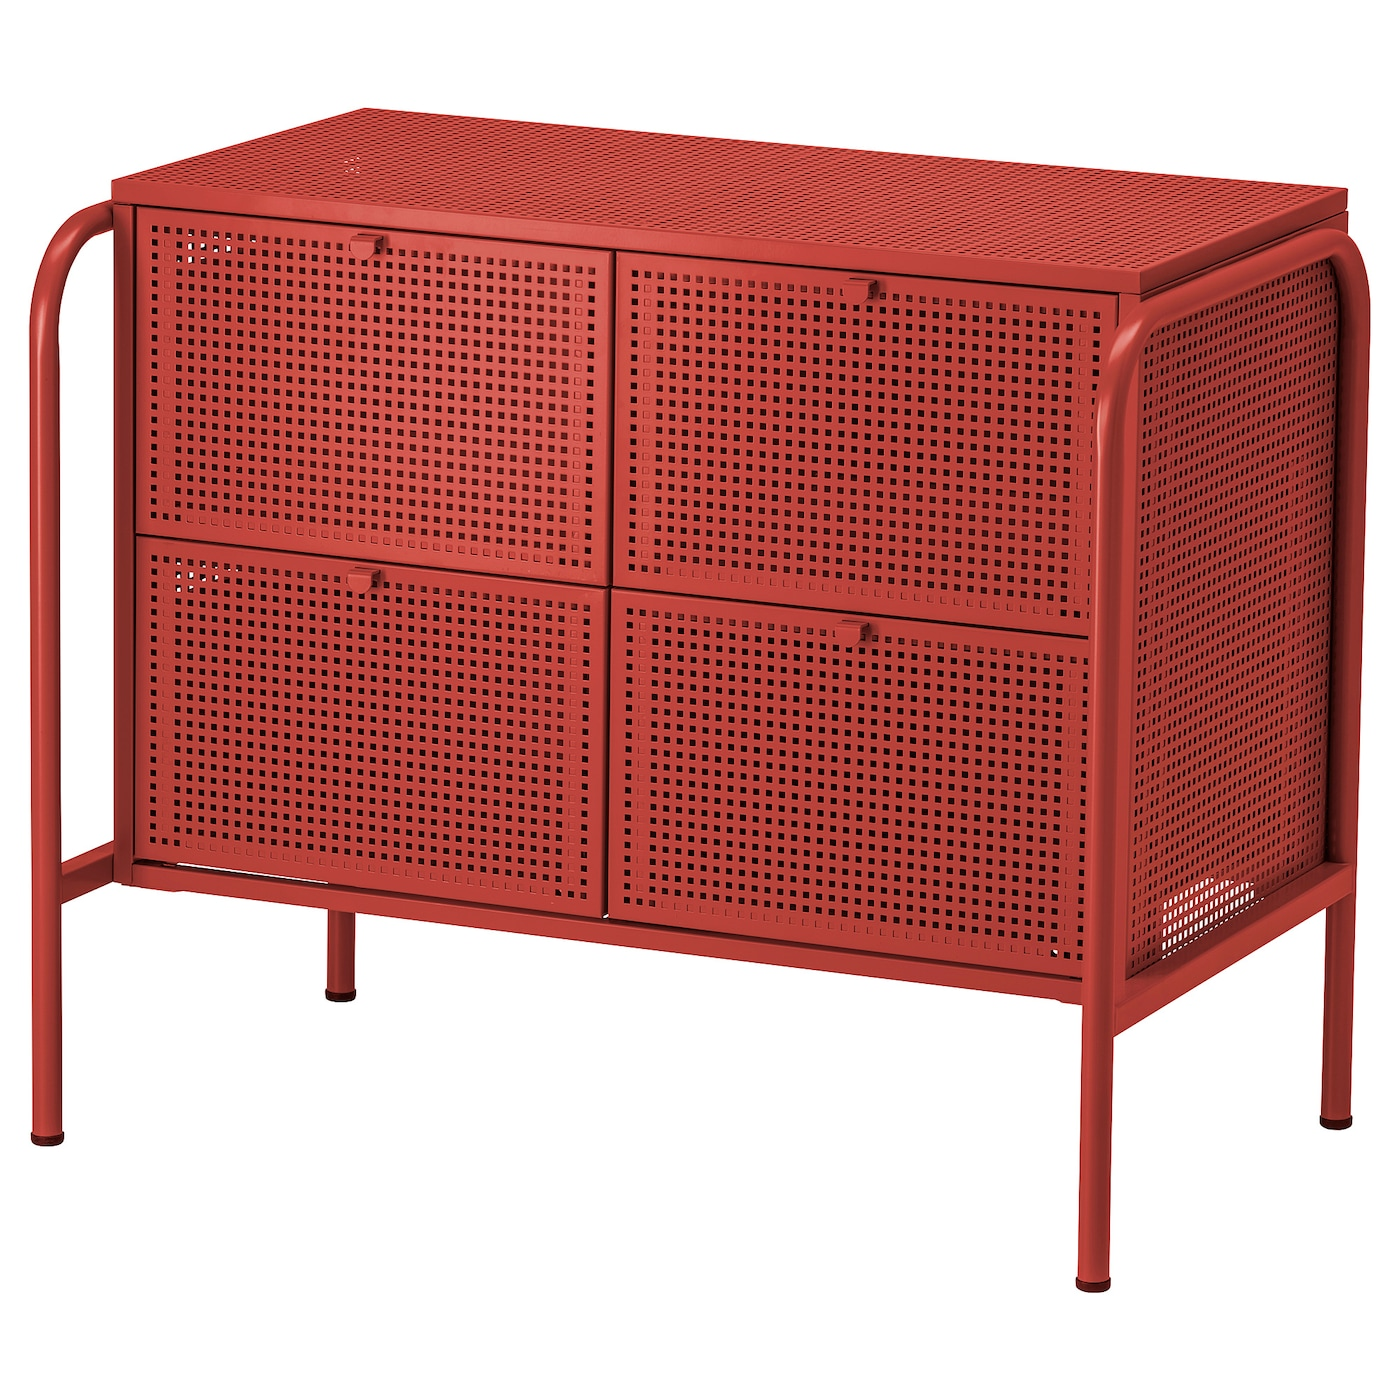 Shop for Furniture, Lighting, Home Accessories & More - IKEA